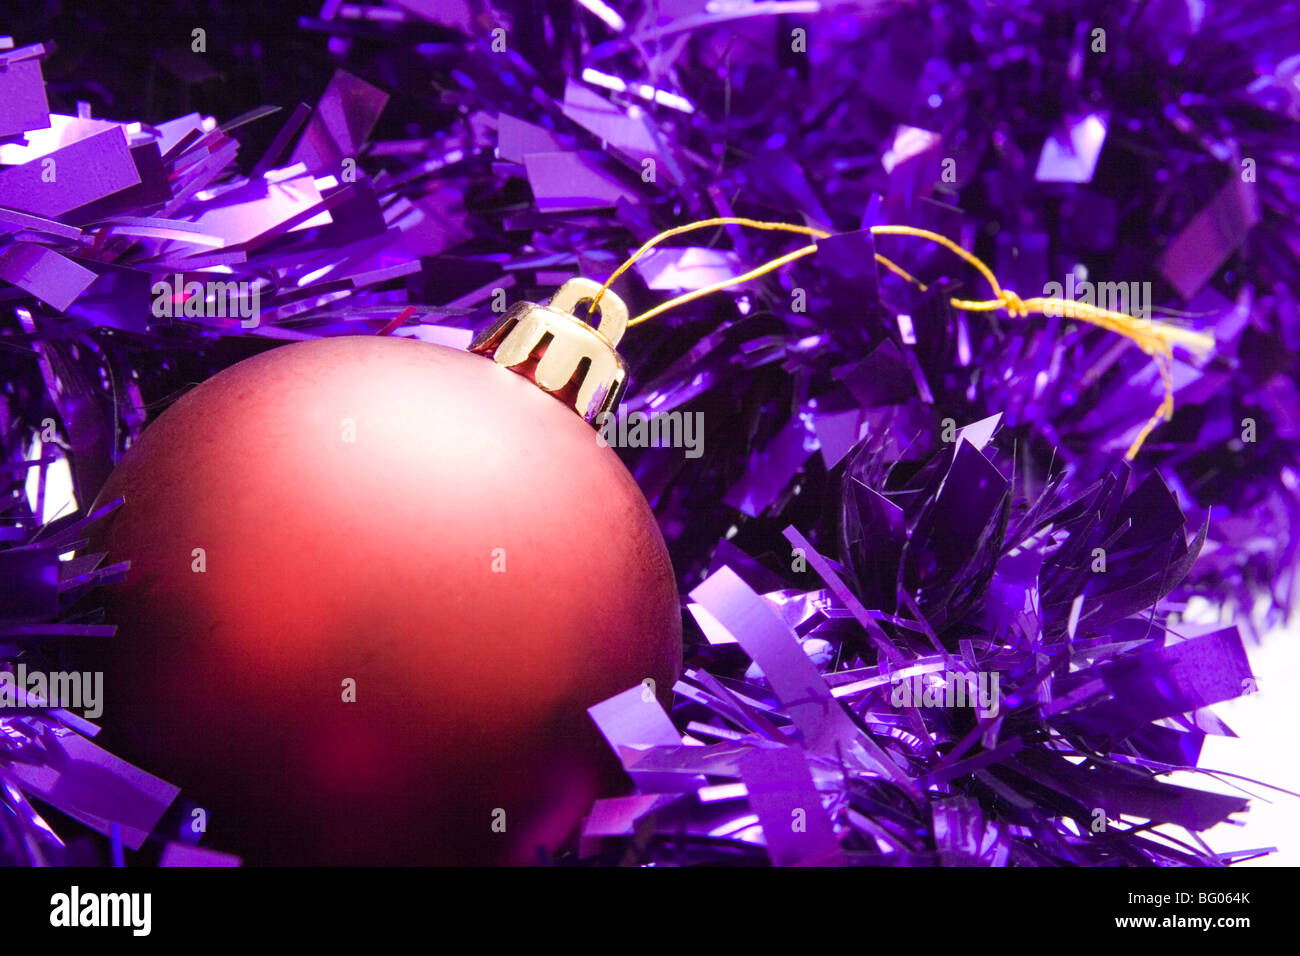 Purple and red christmas decorations - Stock Photo The Essence Of Christmas Decorations A Red Bauble In Purple Tinsel